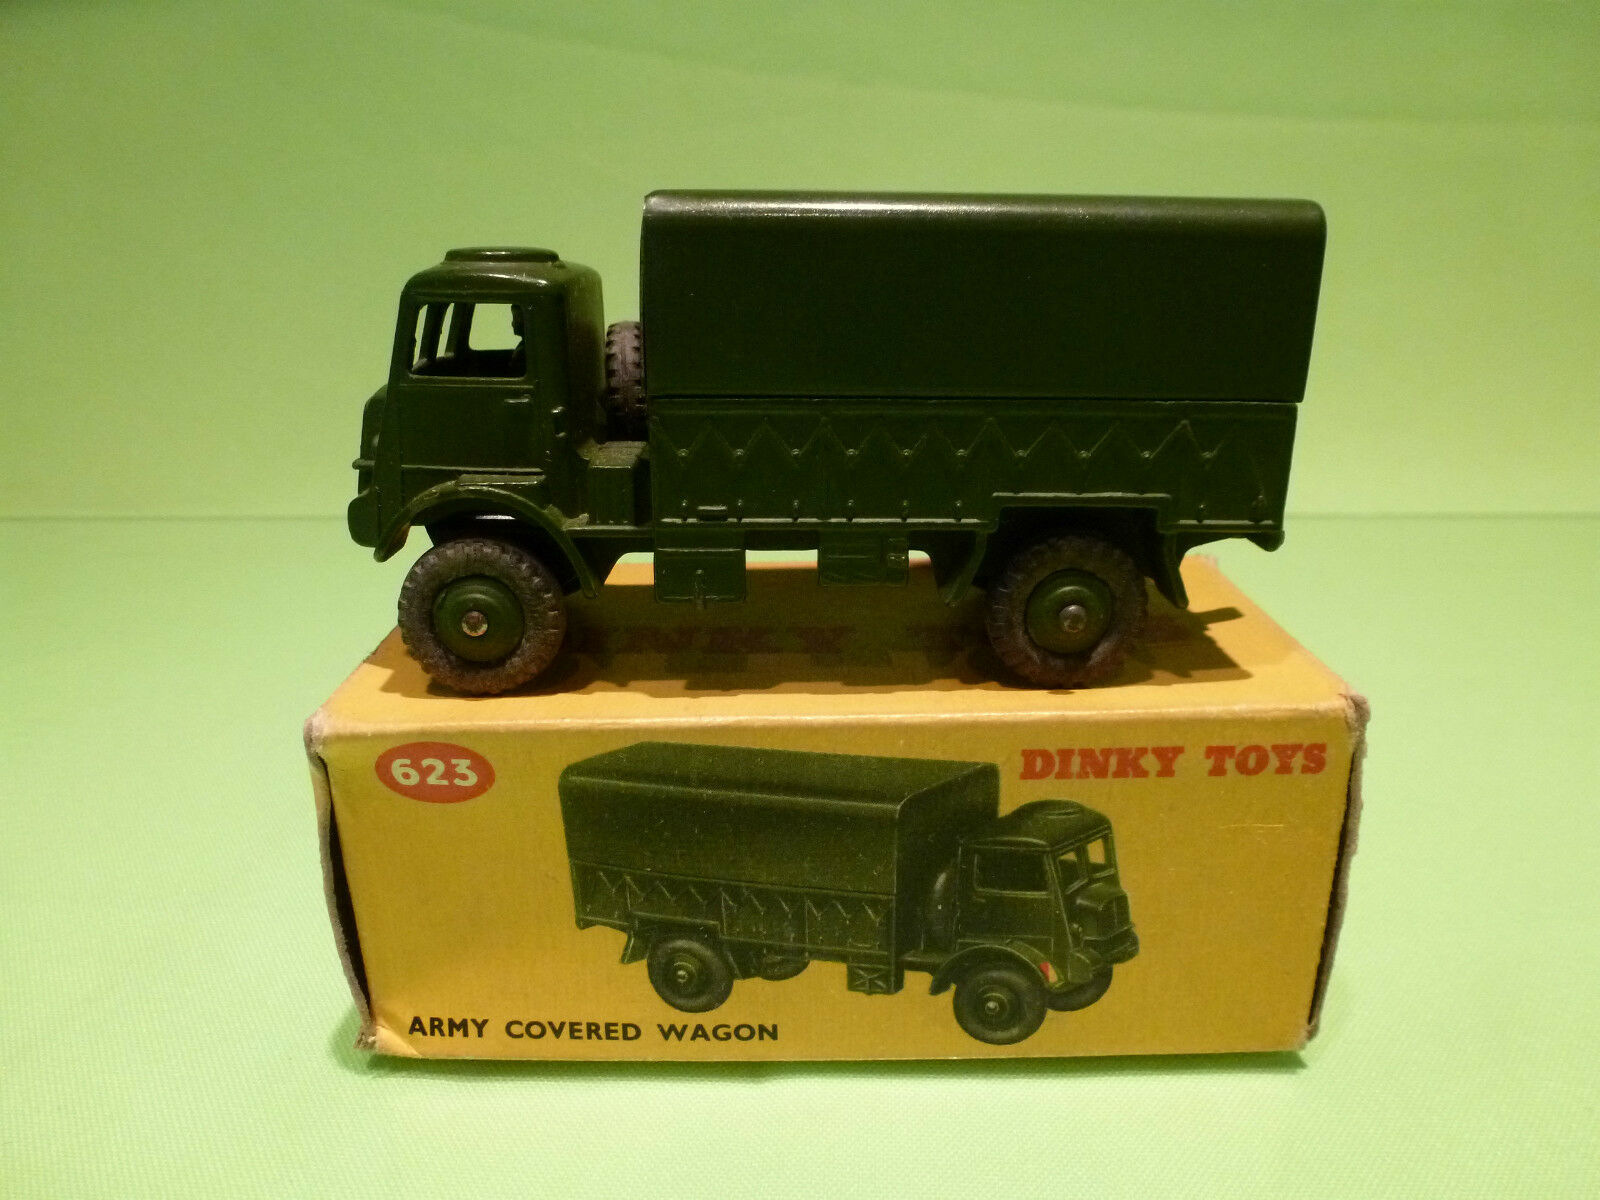 DINKY TOYS 623 ARMY COVERED WAGON - MILITARY - NEAR MINT IN BOX